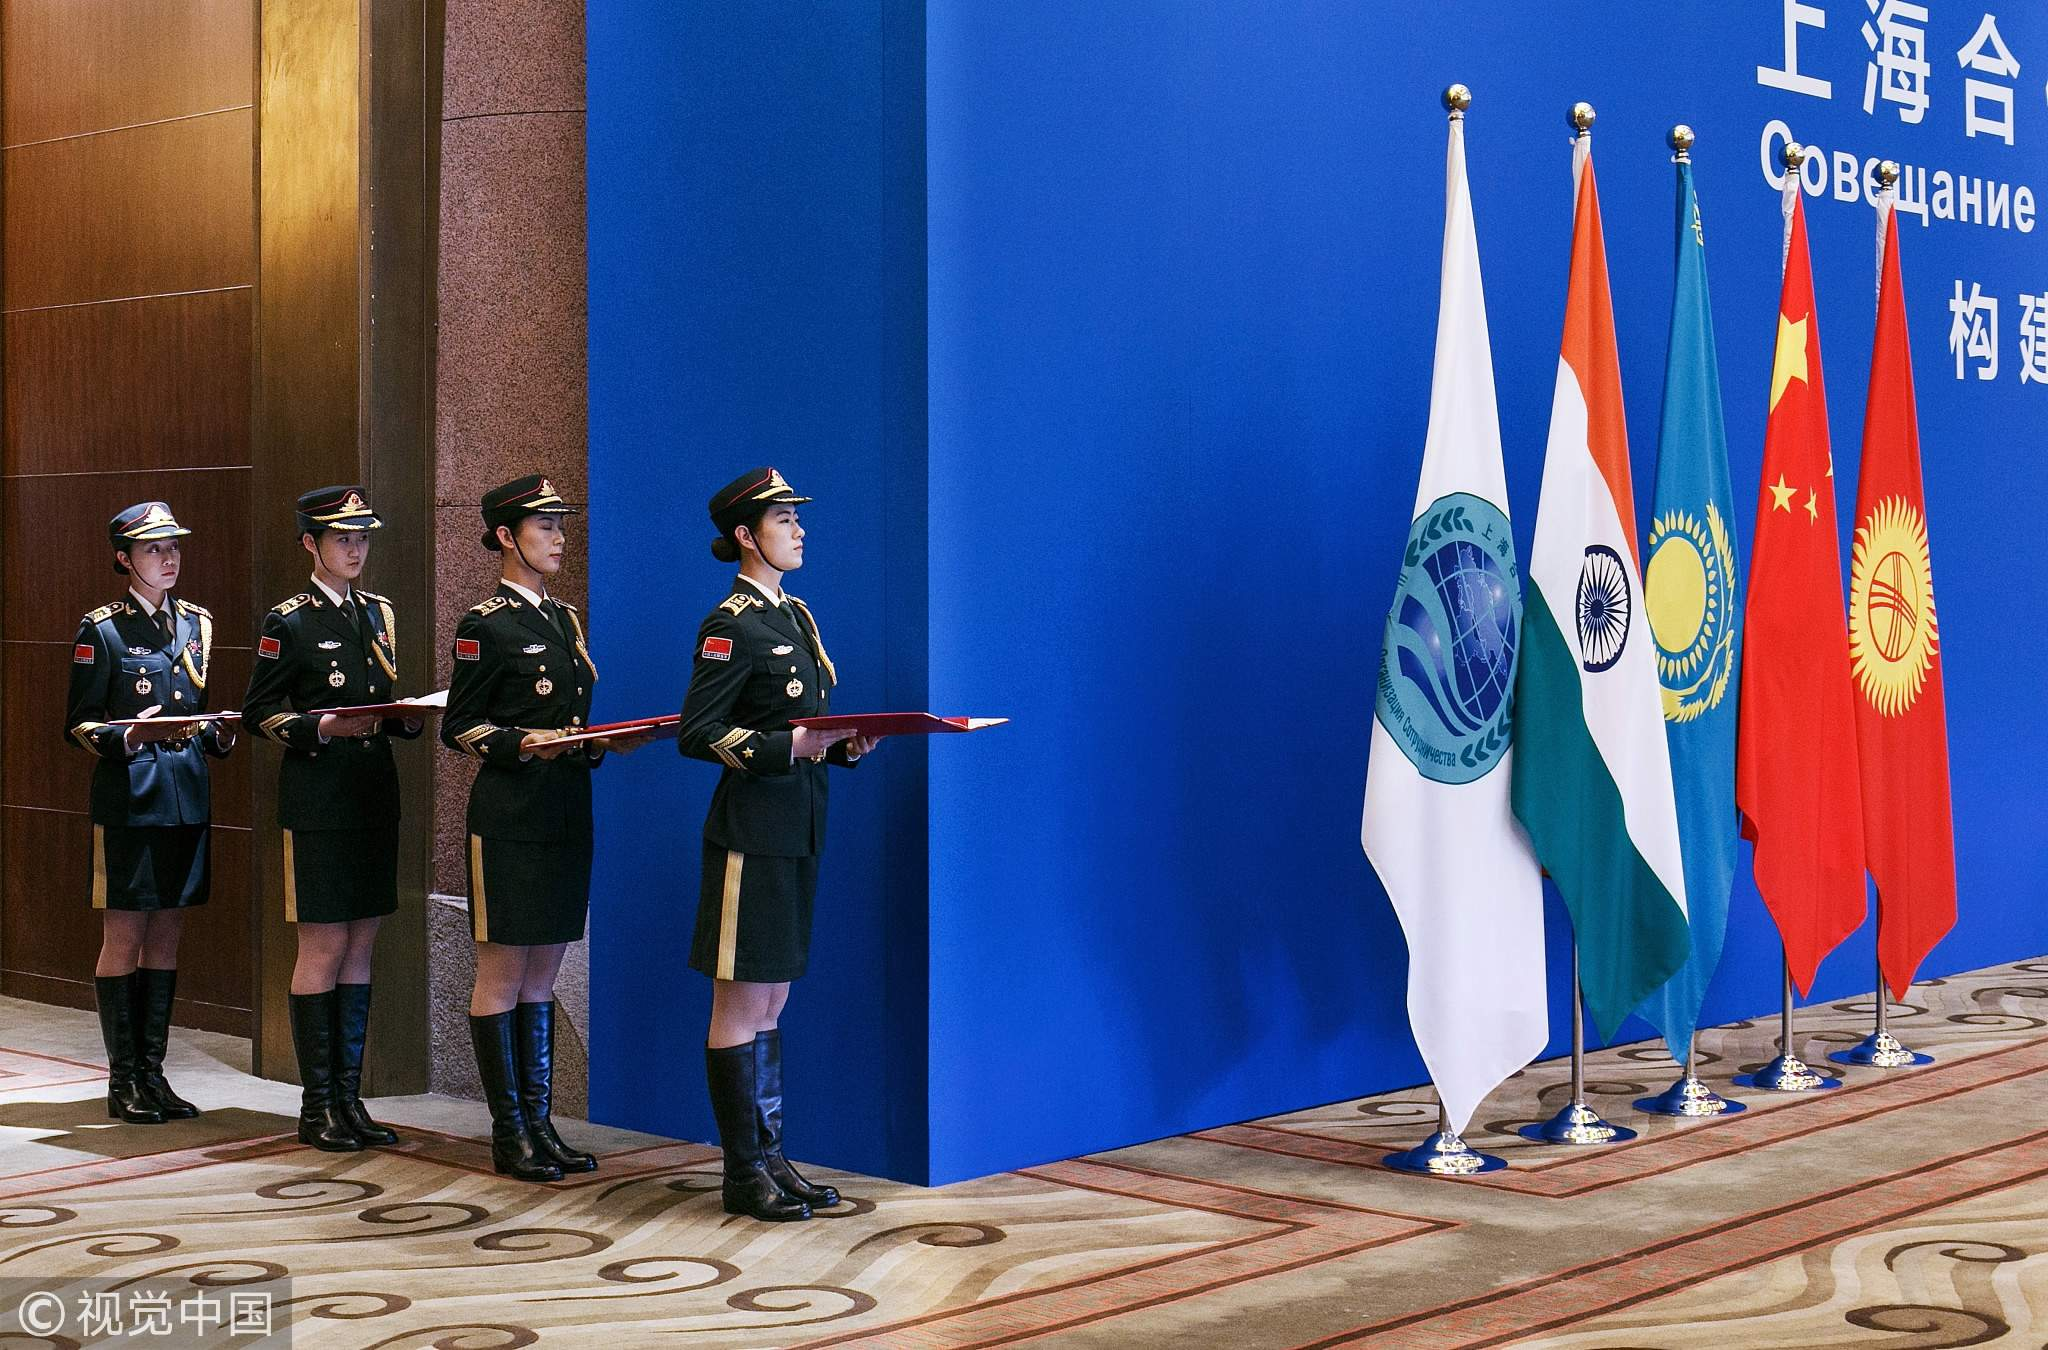 India, Pakistan join SCO: What does this expansion mean? - CGTN